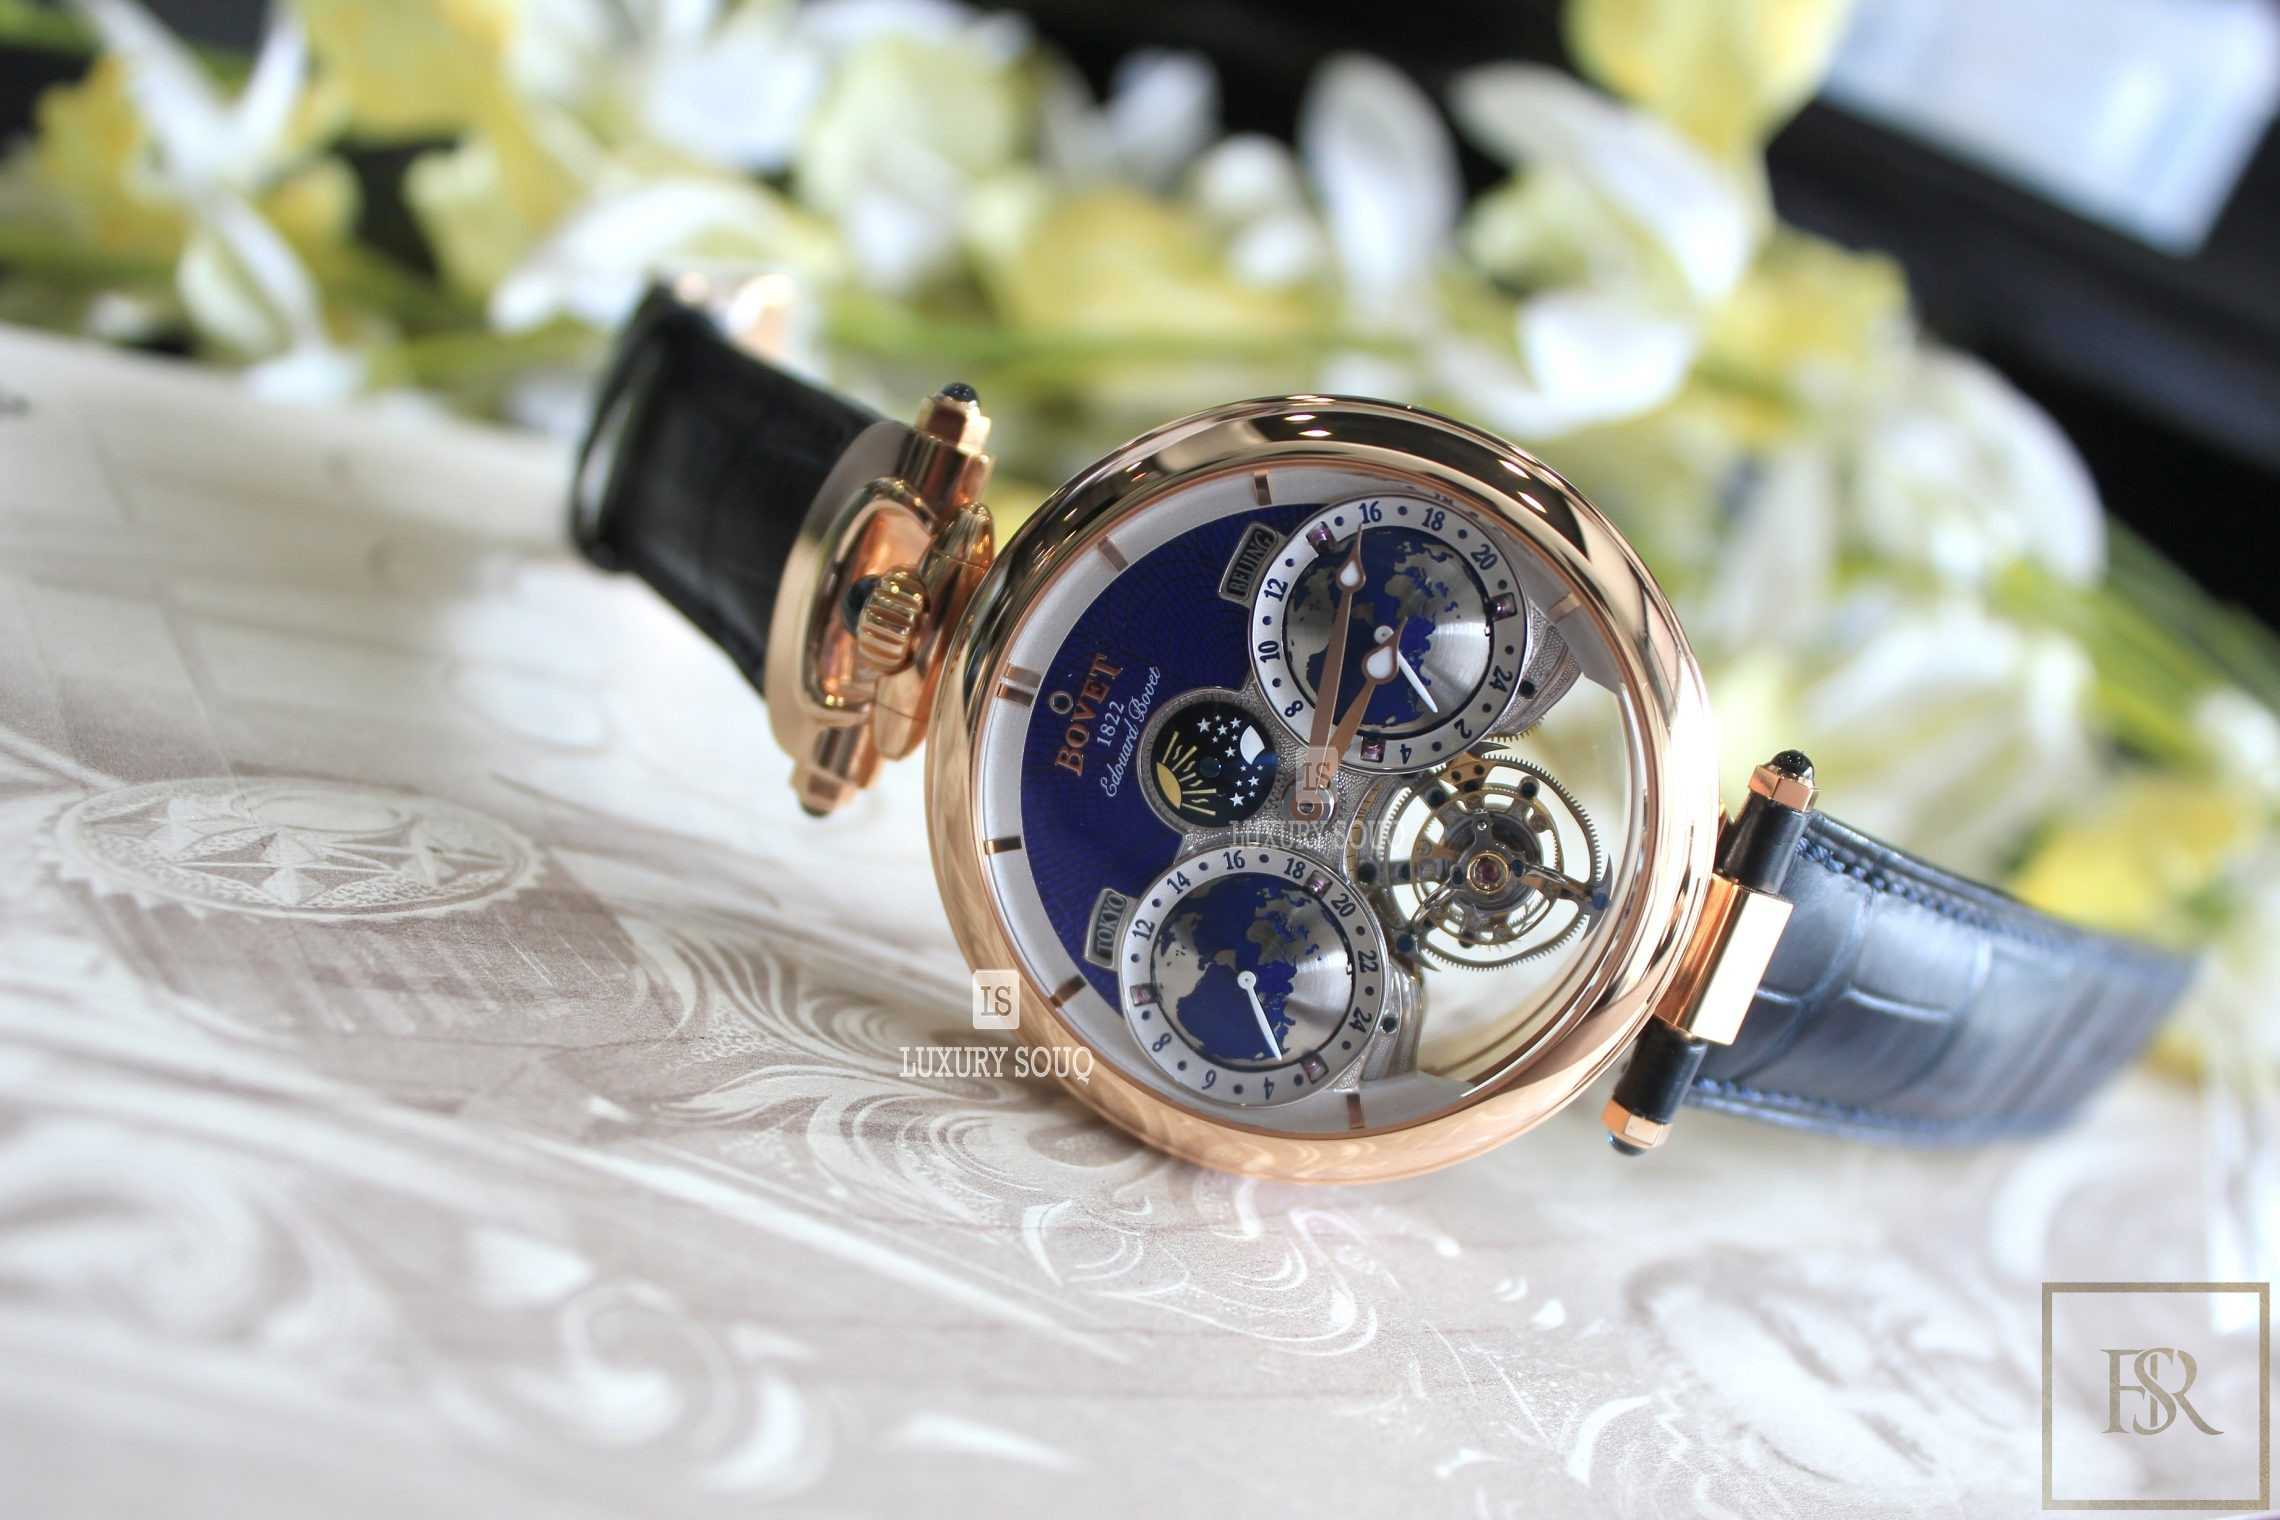 Watch BOVET Amadeo Fleurier Flying Tourbillon Limited Edition  for sale For Super Rich